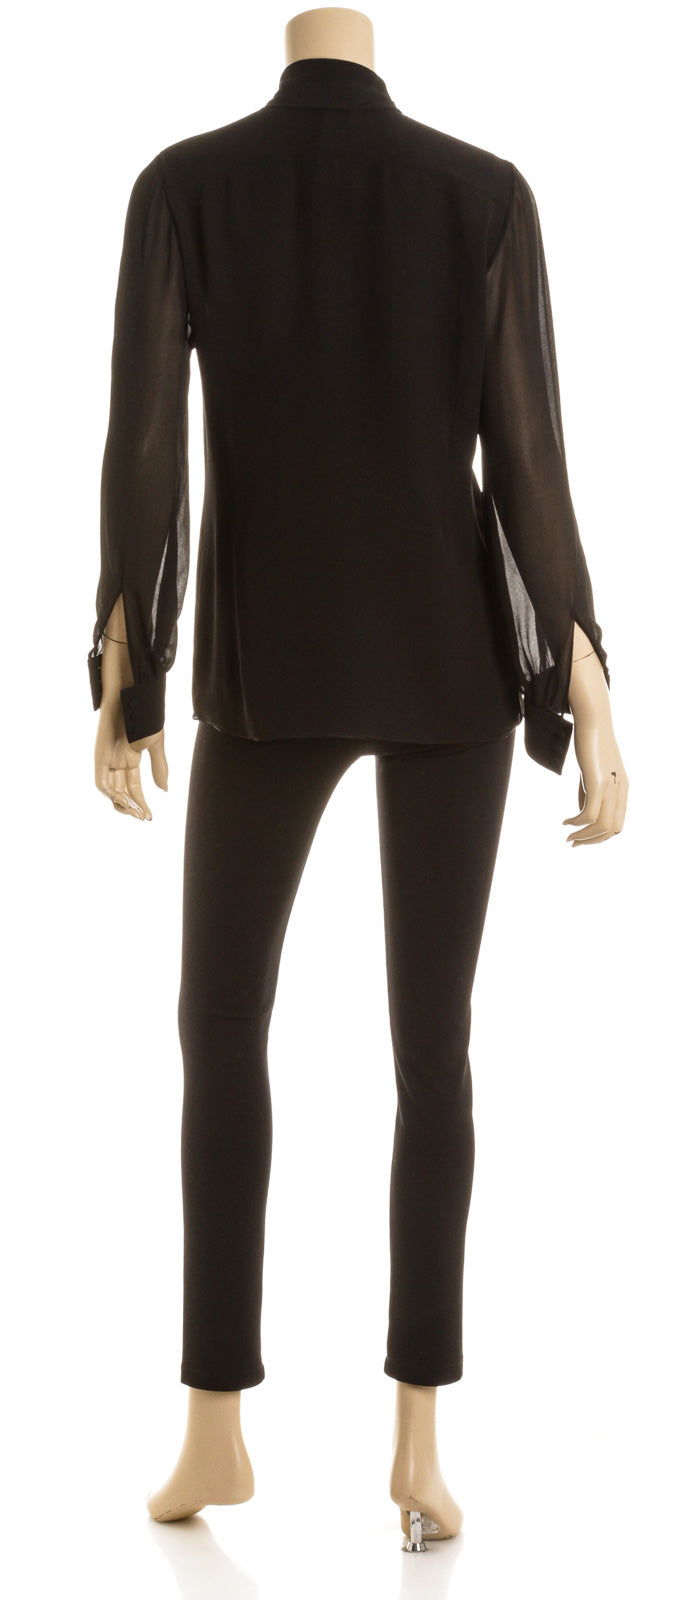 Yves saint Laurent Black Silk Sheer Blouse Size S/M